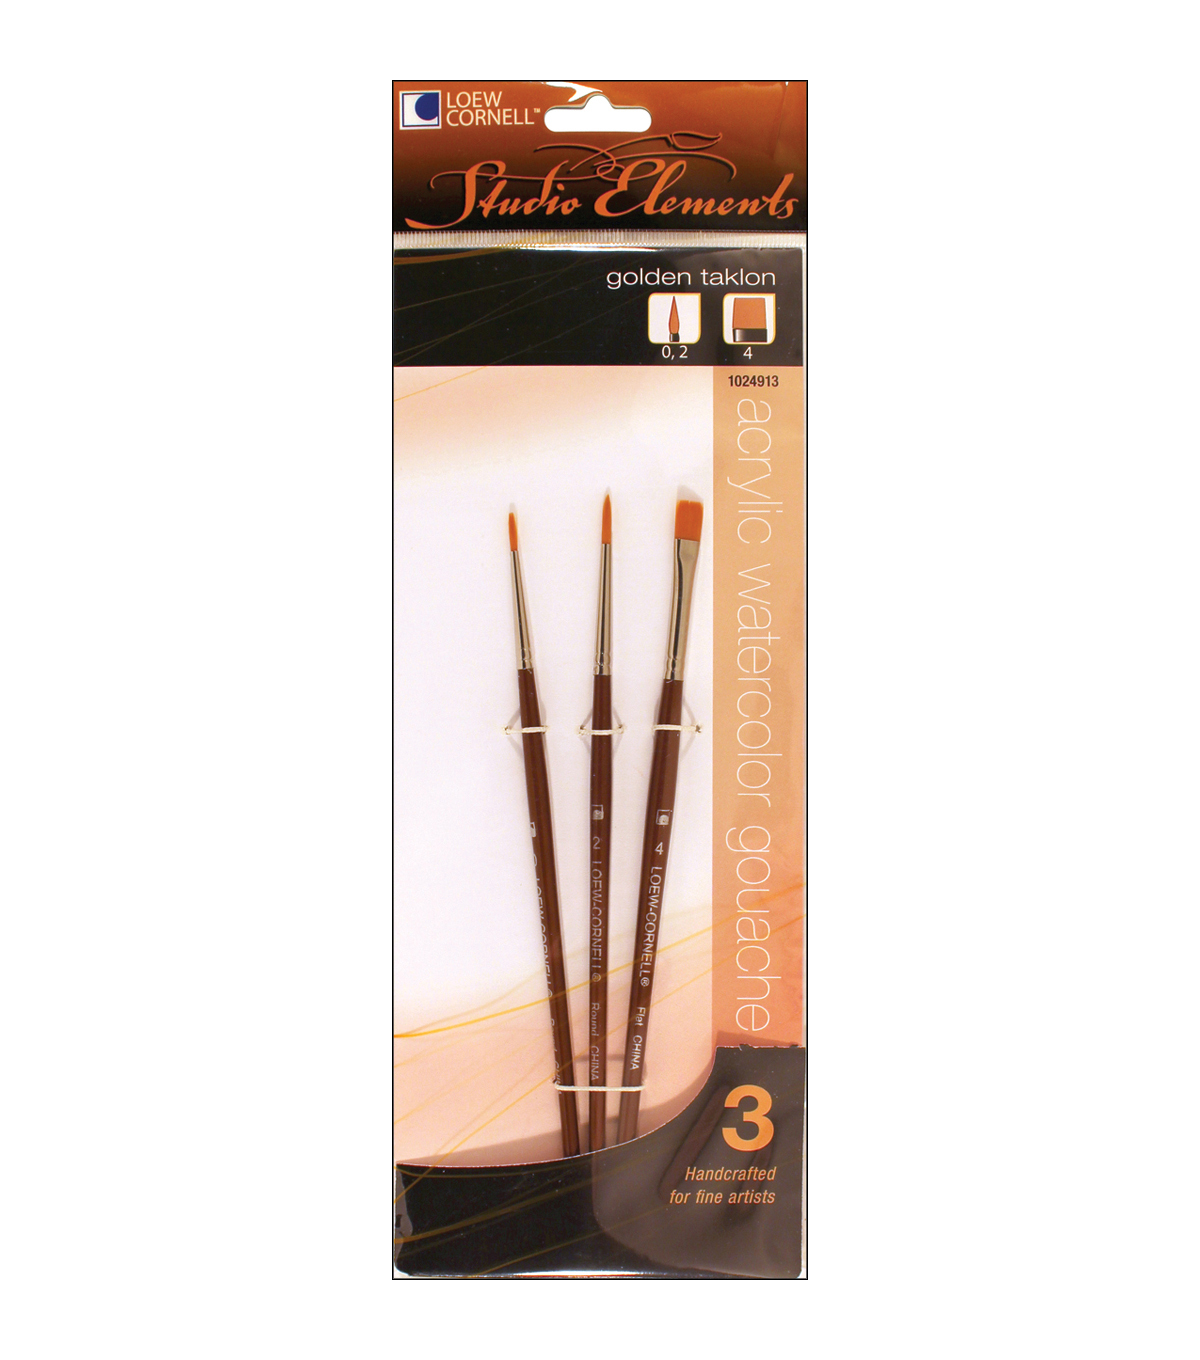 Loew-Cornell Studio Elements Round & Flat Golden Taklon Brushes